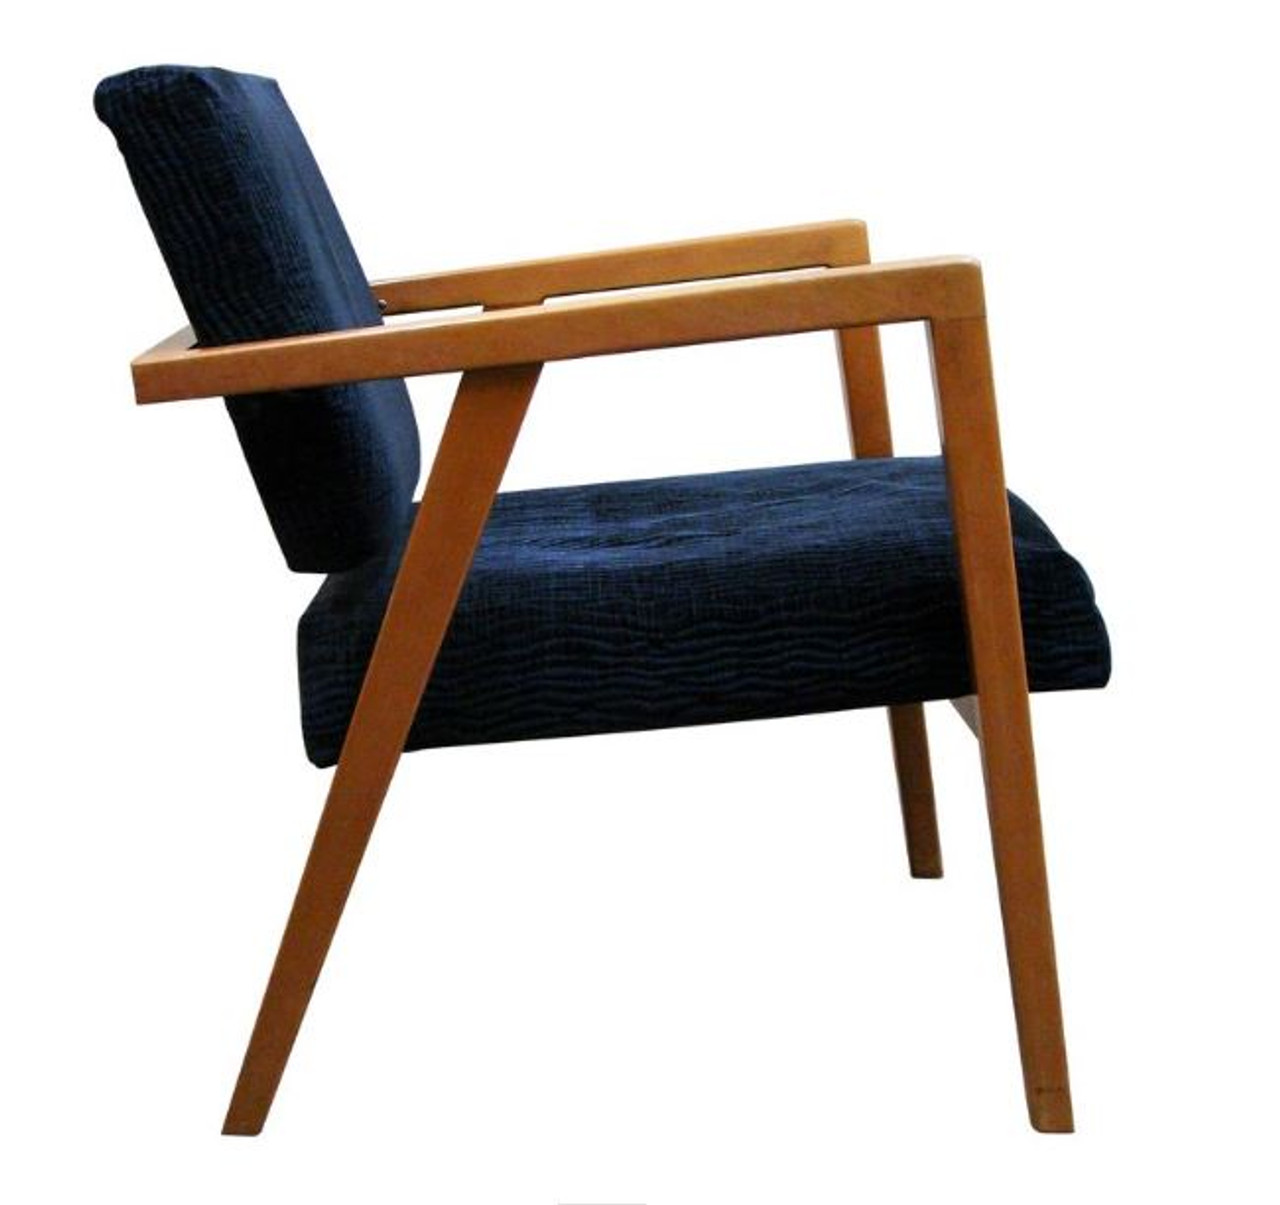 X Sold Vintage Lounge Chair By Franco Albini For Knoll Circa 1952 Modern Contemporary Furniture And Accessories Vintage Inventory Mod Livin